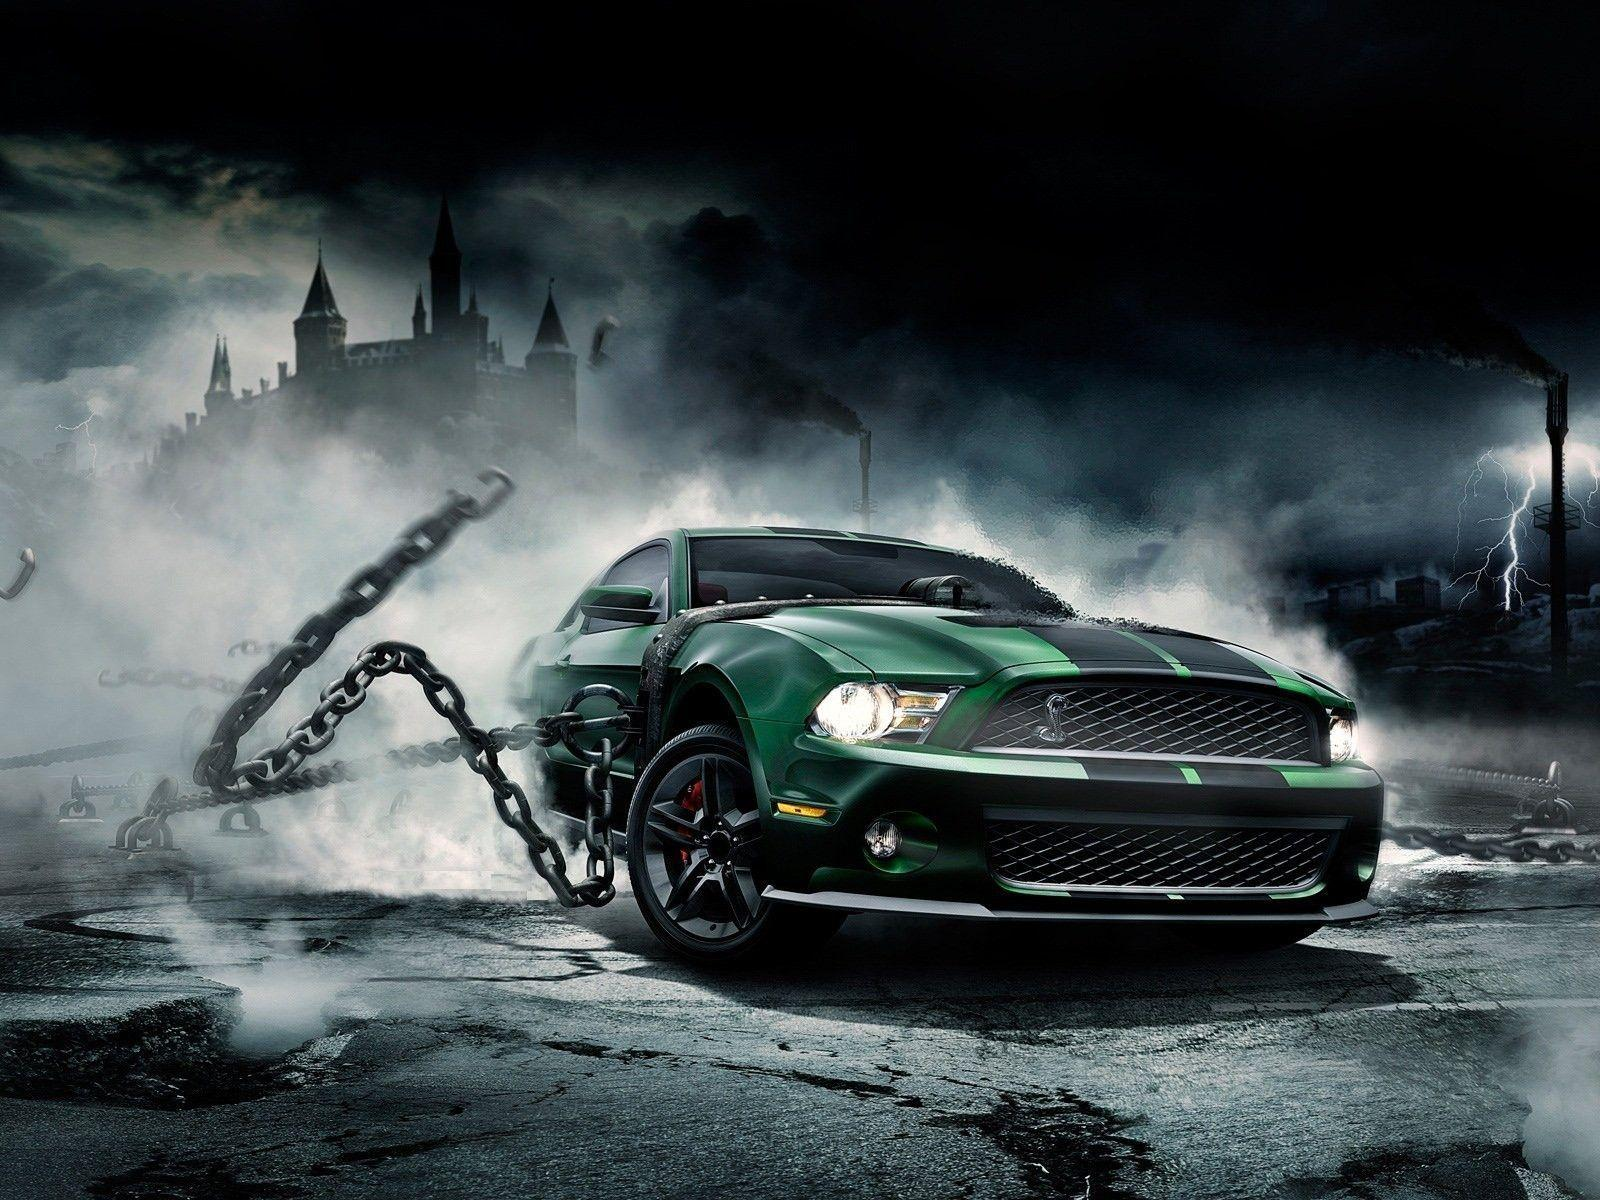 Cool Muscle Cars Wallpaper Pictures 5 HD Wallpapers | lzamgs.